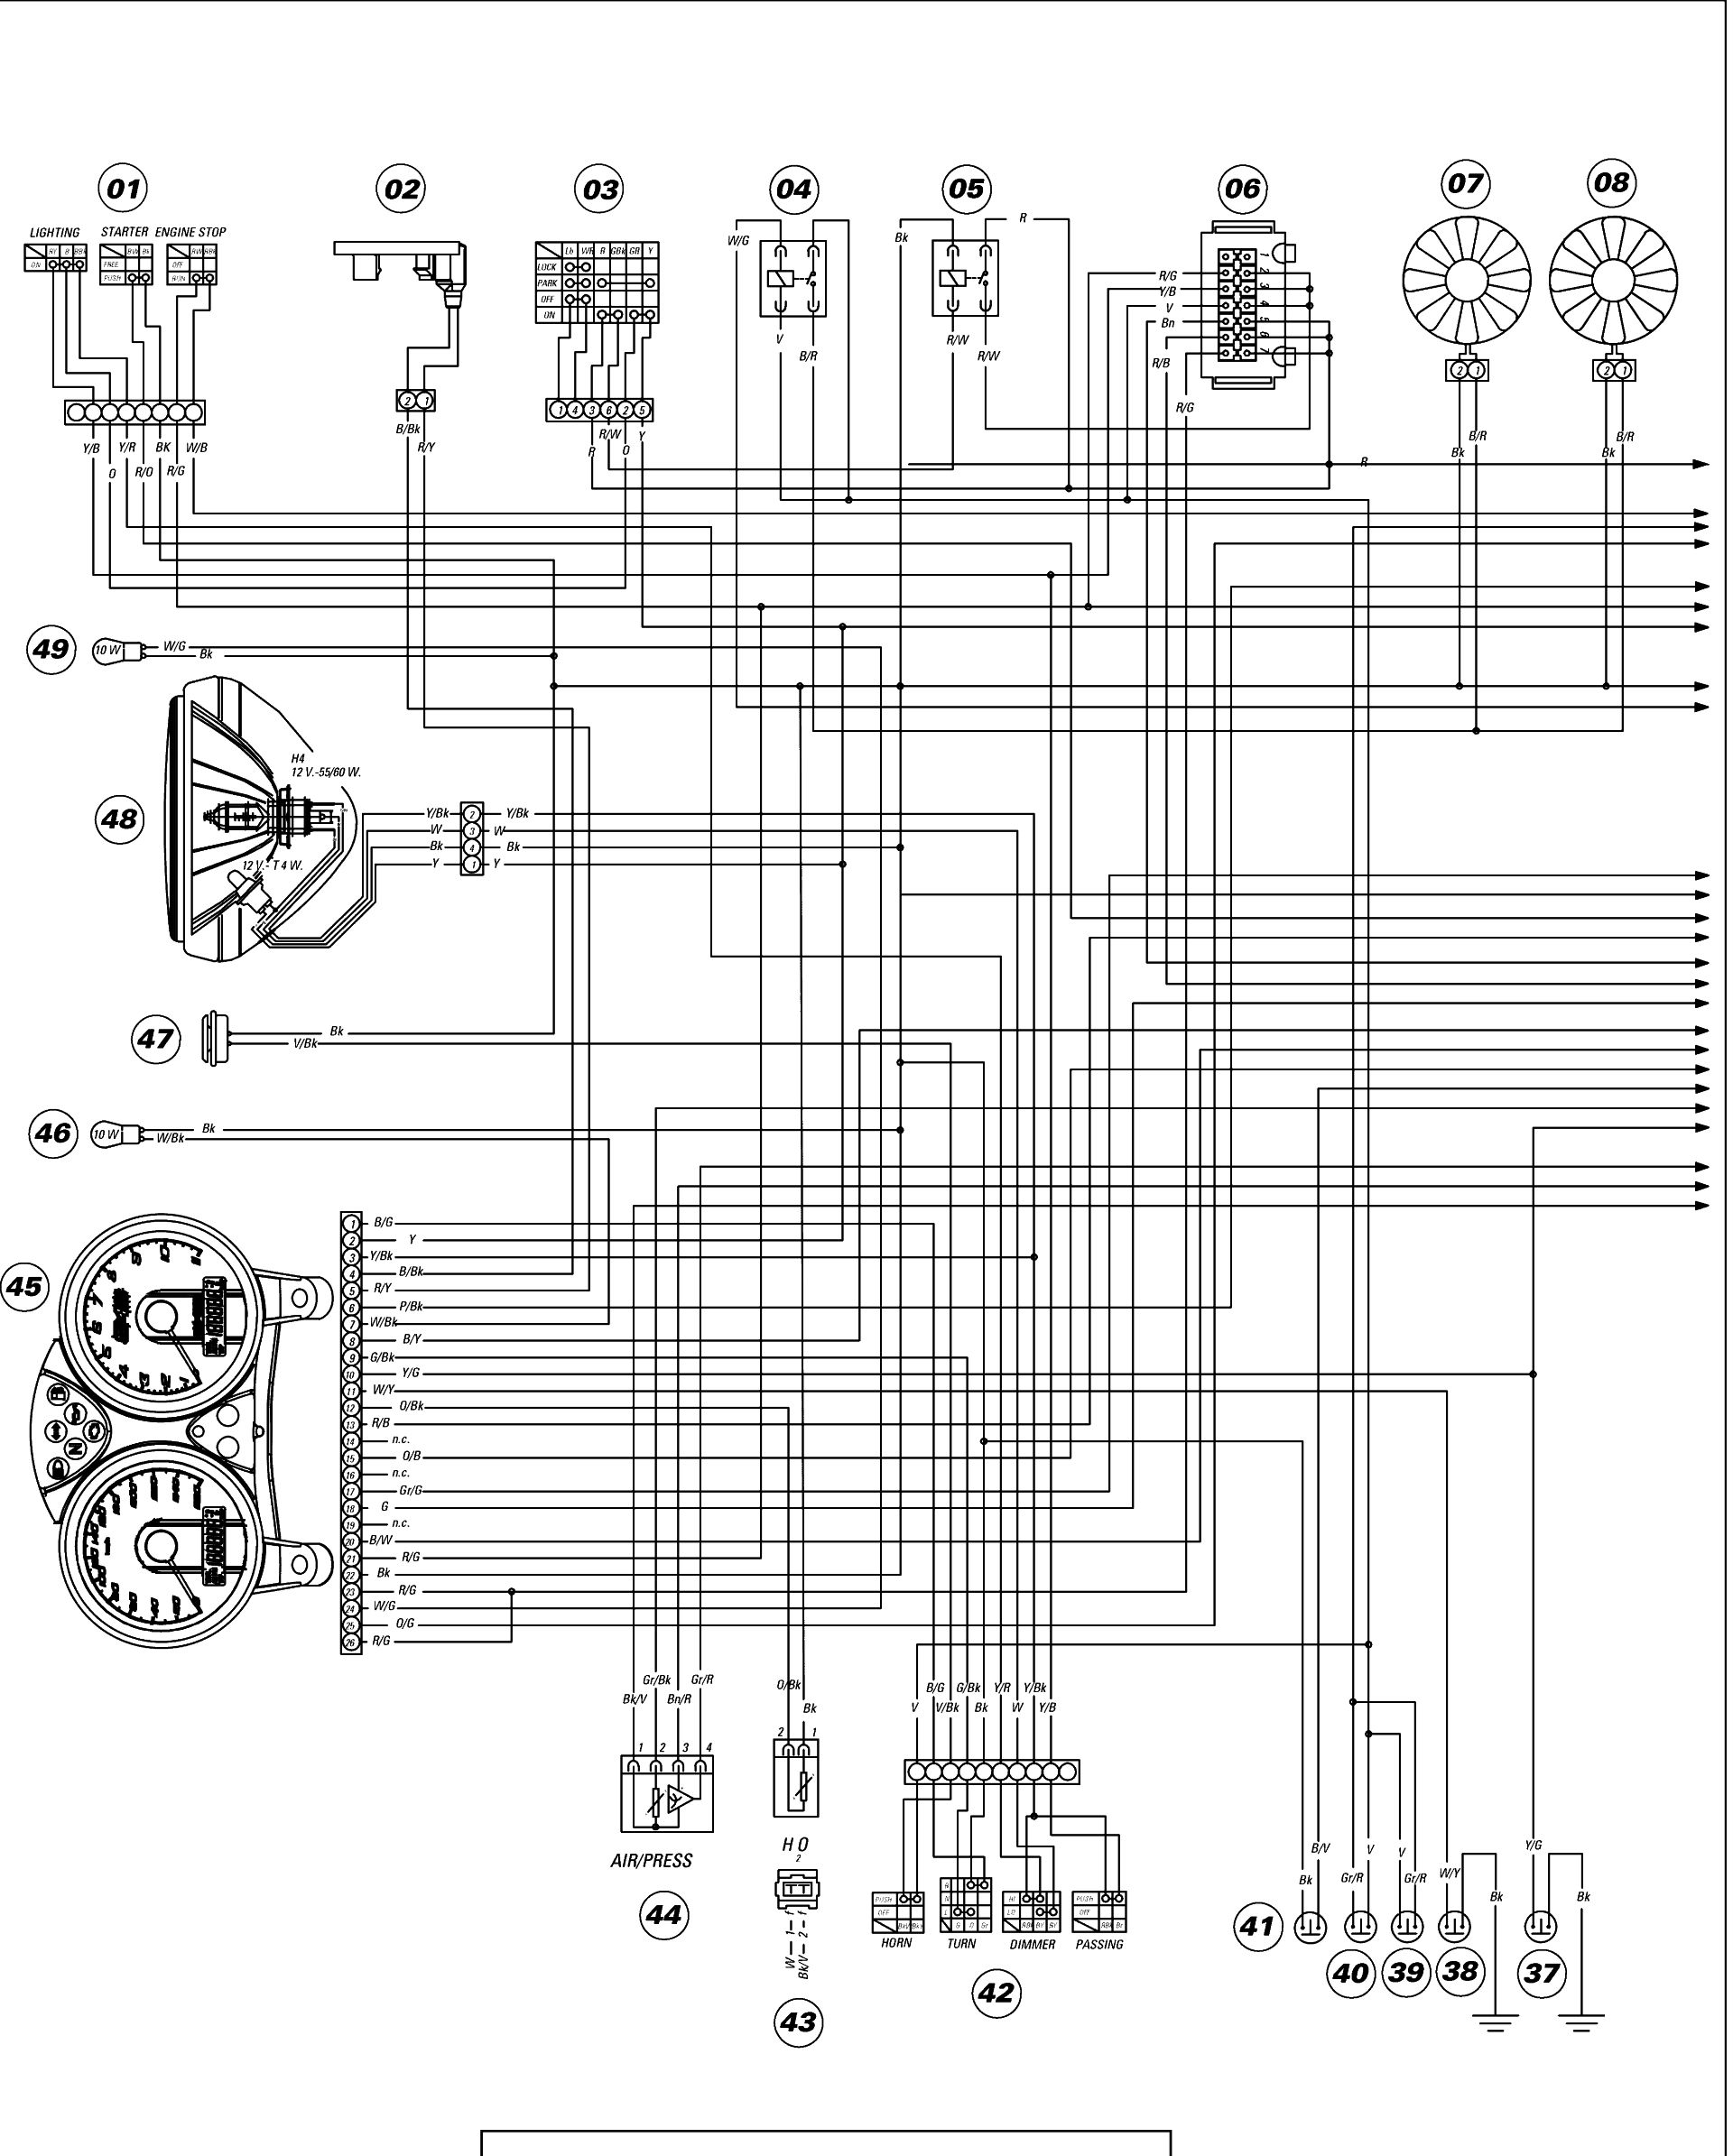 hight resolution of ducati monster s4 wiring diagram wiring diagram schema blogducati monster s4 wiring diagram online wiring diagram